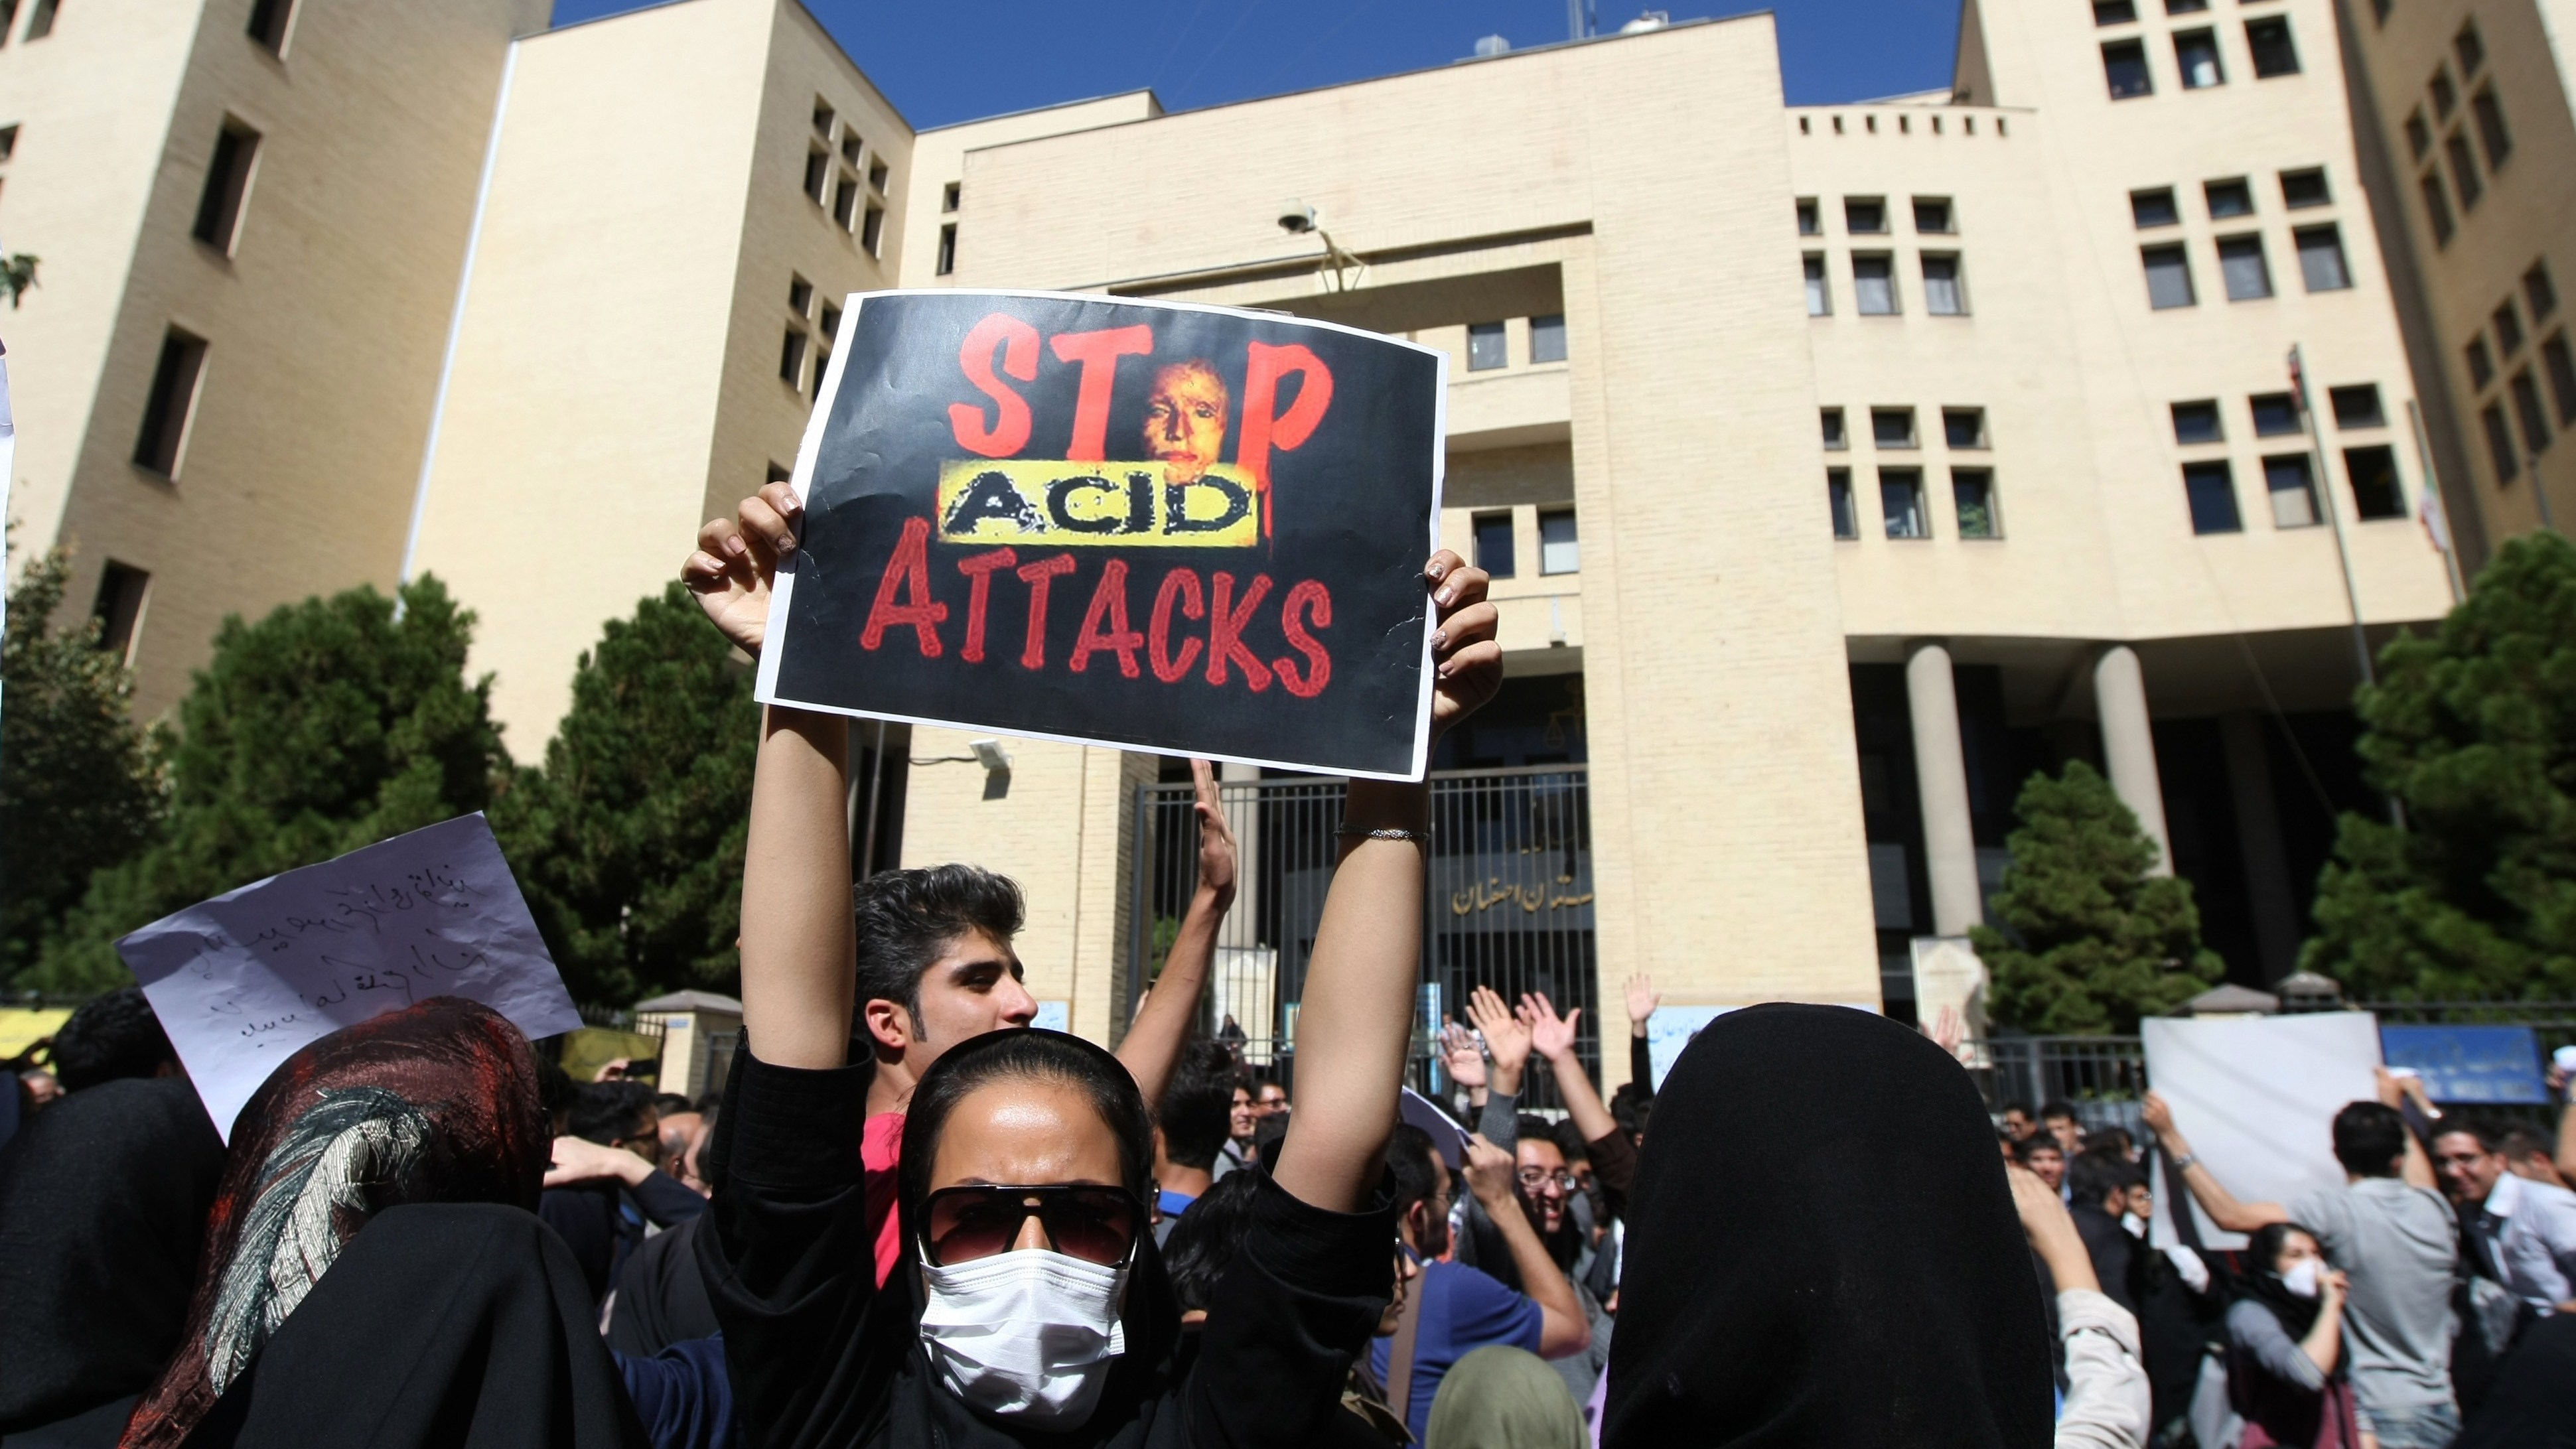 After Acid Attacks And Execution, Iran Defends Human Rights Record